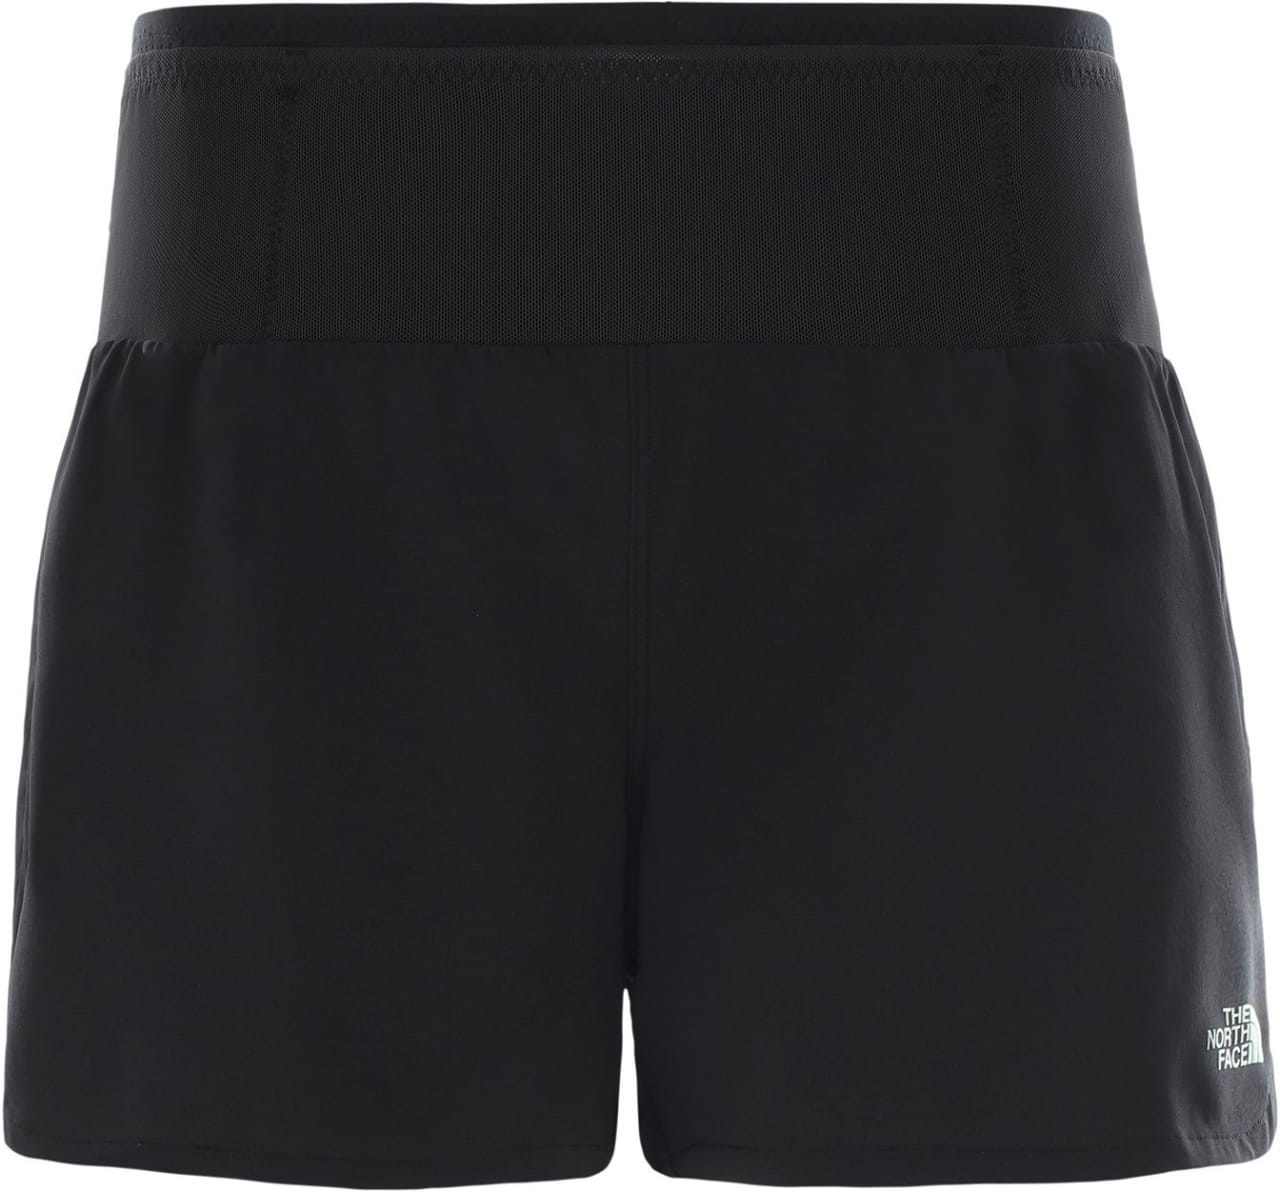 Shorts The North Face Women's Flight Series Better Than Naked Shorts